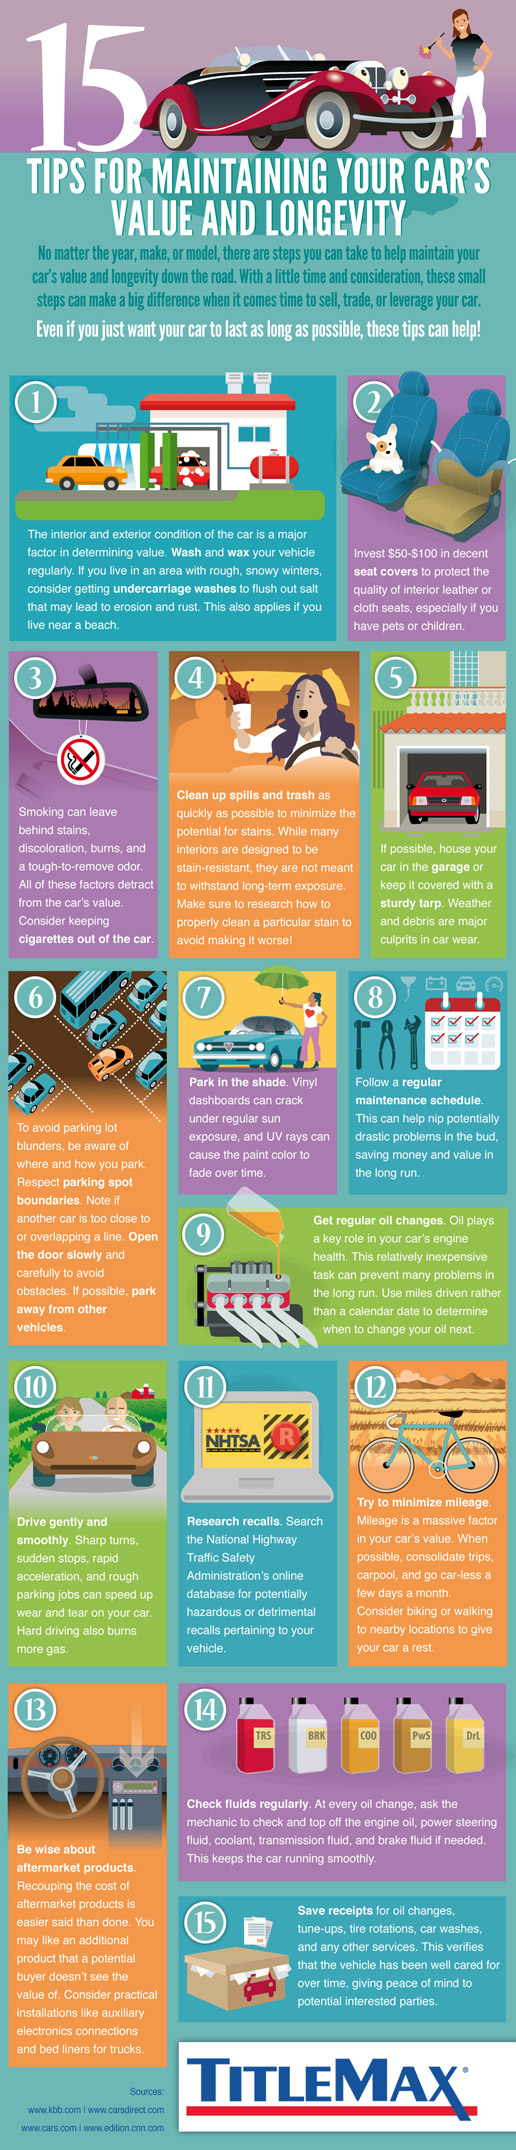 15 Tips for Maintaining Your Car's Value [Infographic]